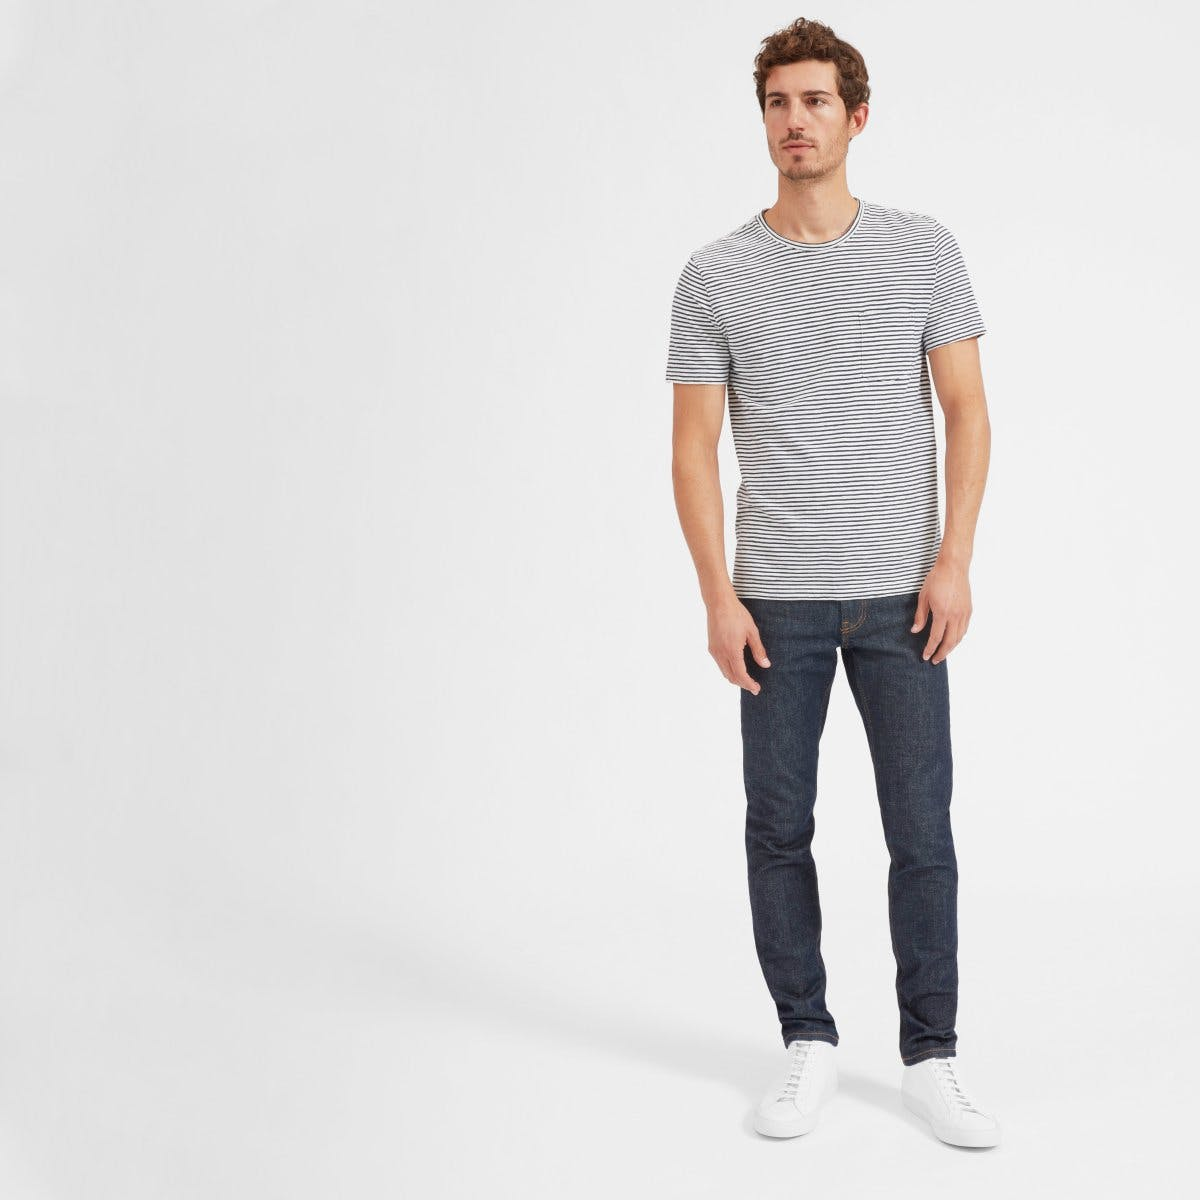 The Slim in Dark Indigo